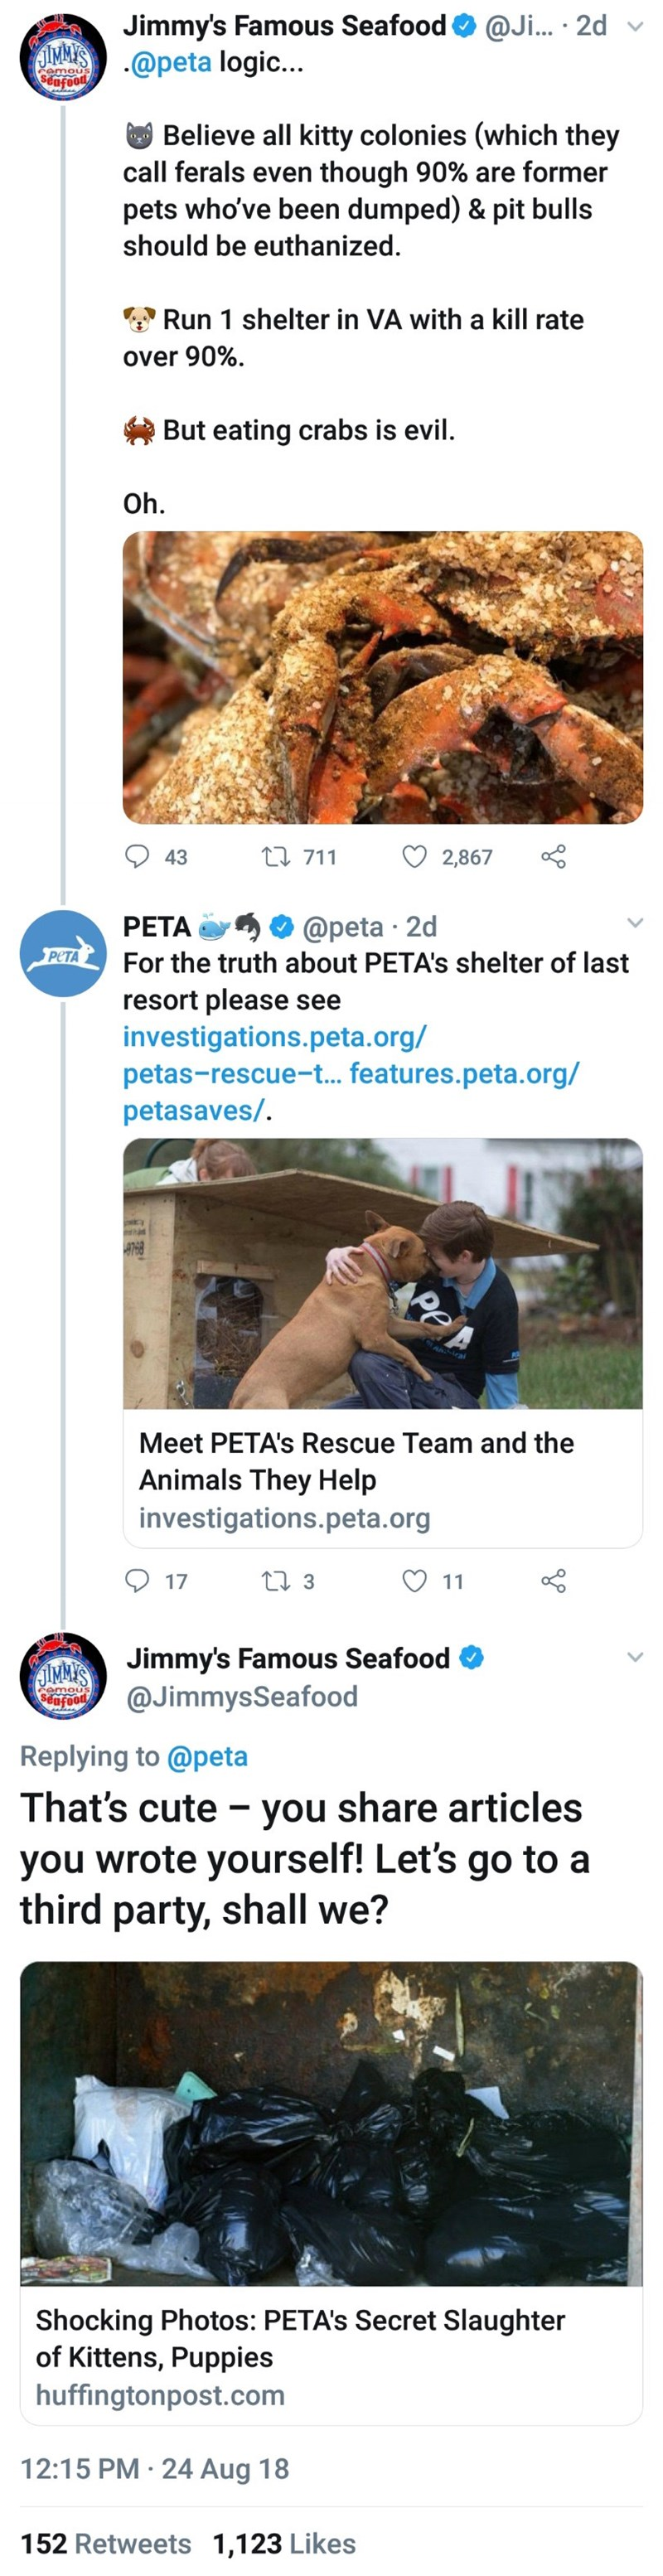 Font - Jimmy's Famous Seafood SIMMA'S@peta logic... @Ji... 2d poofoas Believe all kitty colonies (which they call ferals even though 90% are former pets who've been dumped) & pit bulls should be euthanized. Run 1 shelter in VA with a kill rate over 90% But eating crabs is evil. Oh. L711 43 2,867 @peta 2d For the truth about PETA's shelter of last PETA PETA resort please see investigations.peta.org/ petas-rescue-t... features.peta.org/ petasaves/. APe Meet PETA's Rescue Team and the Animals They